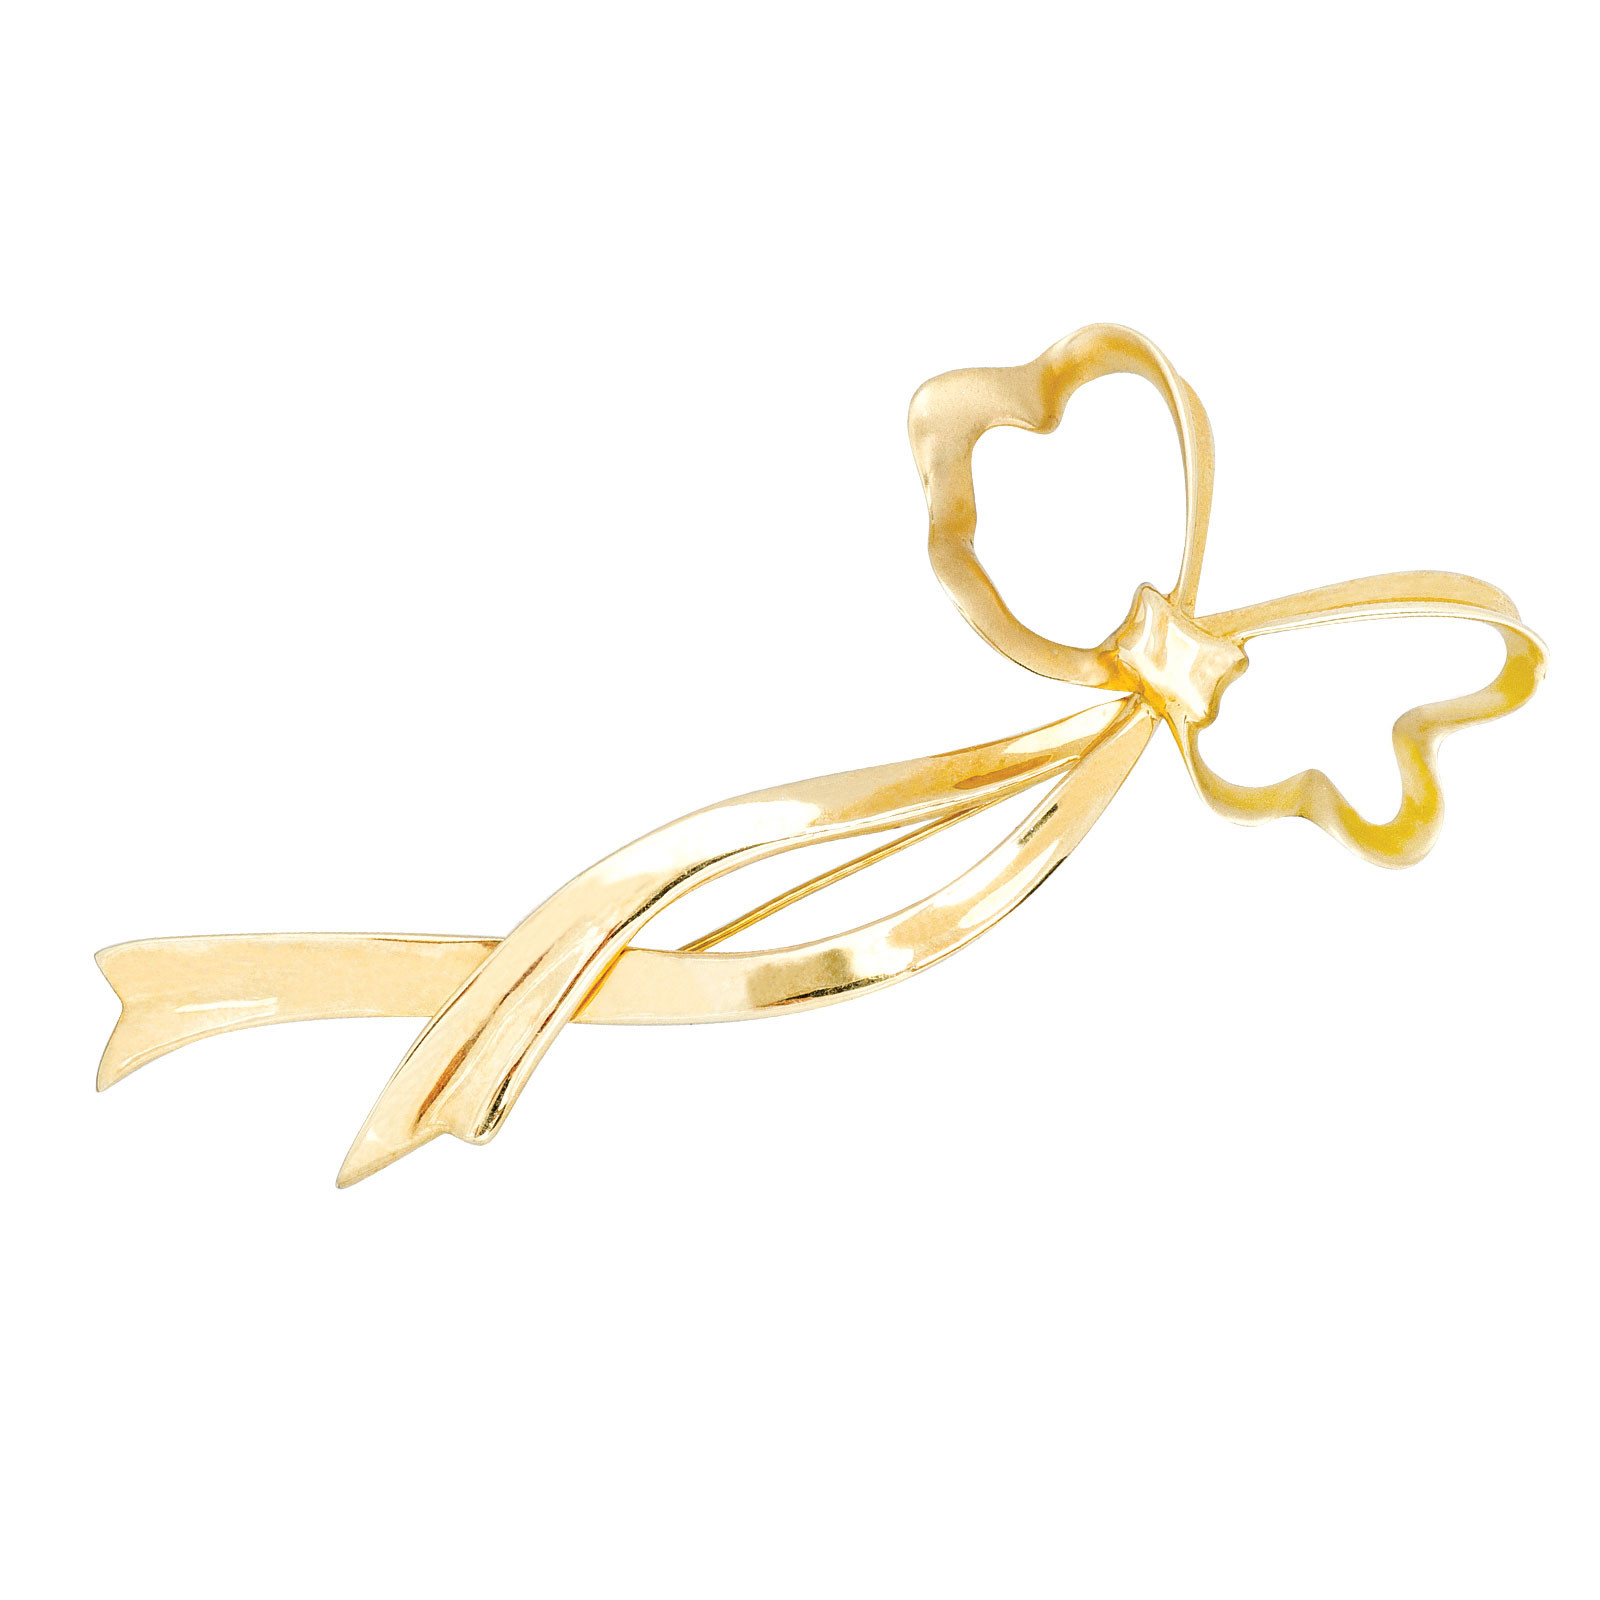 Vintage Tiffany & Co. Bow Pin